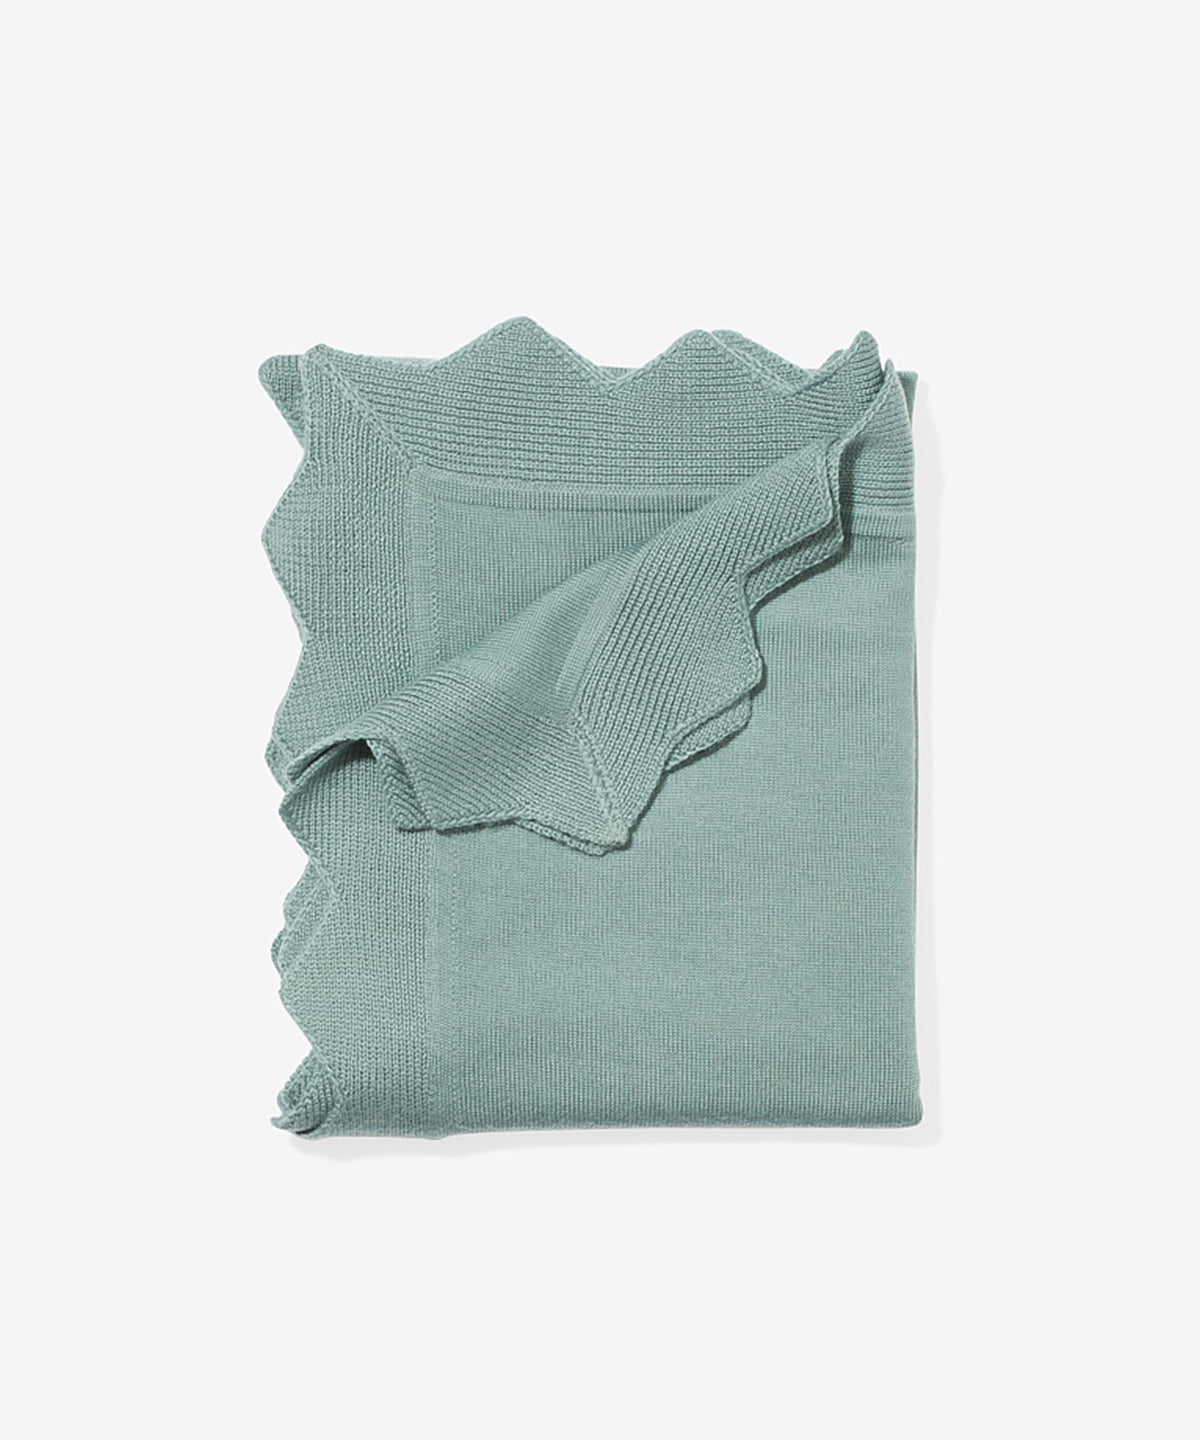 Graham Blanket, Seafoam